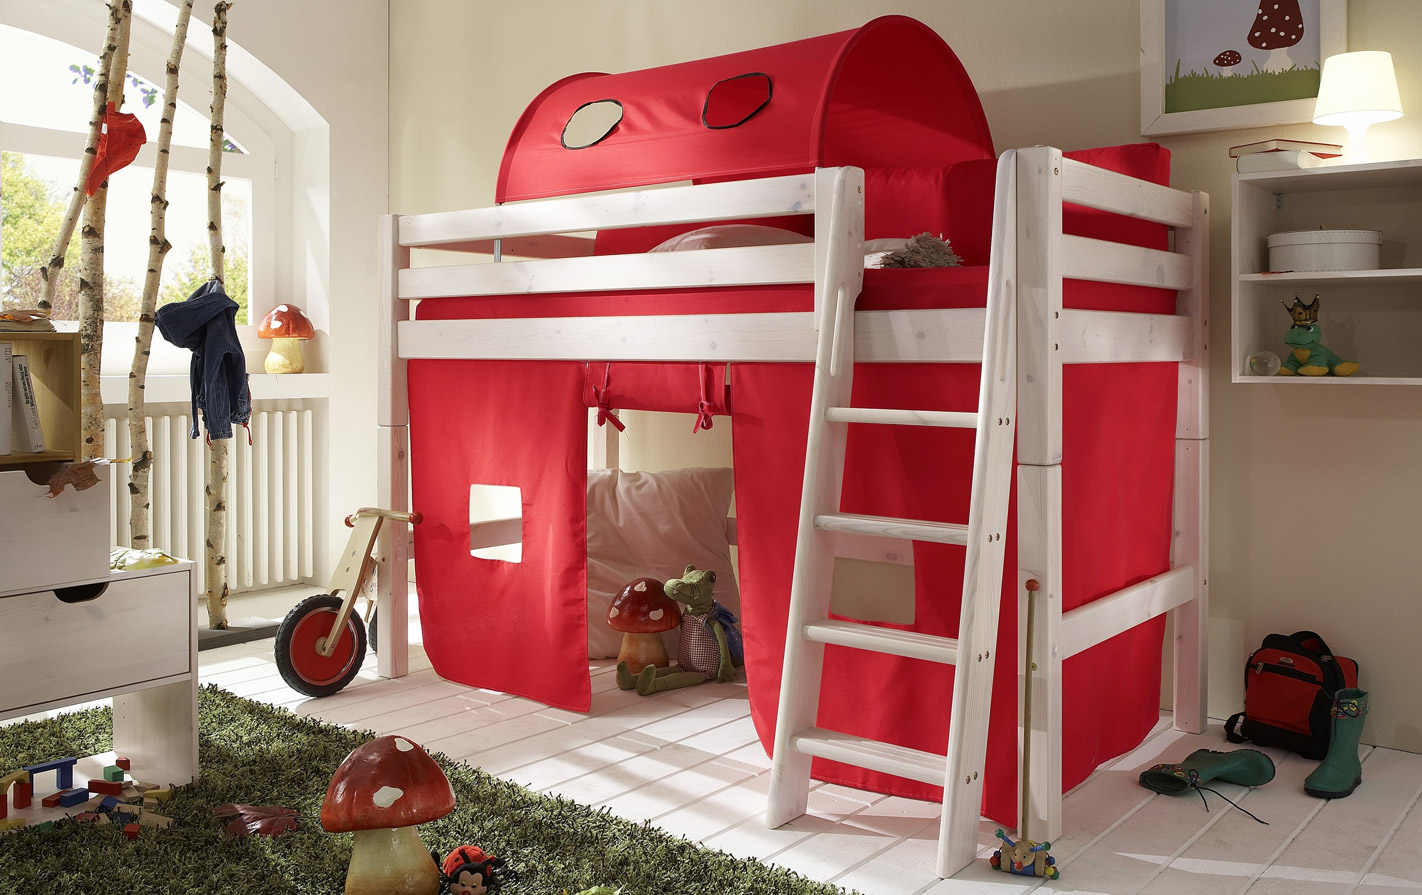 Spielvorhang Kids Paradise Mini in uni rot